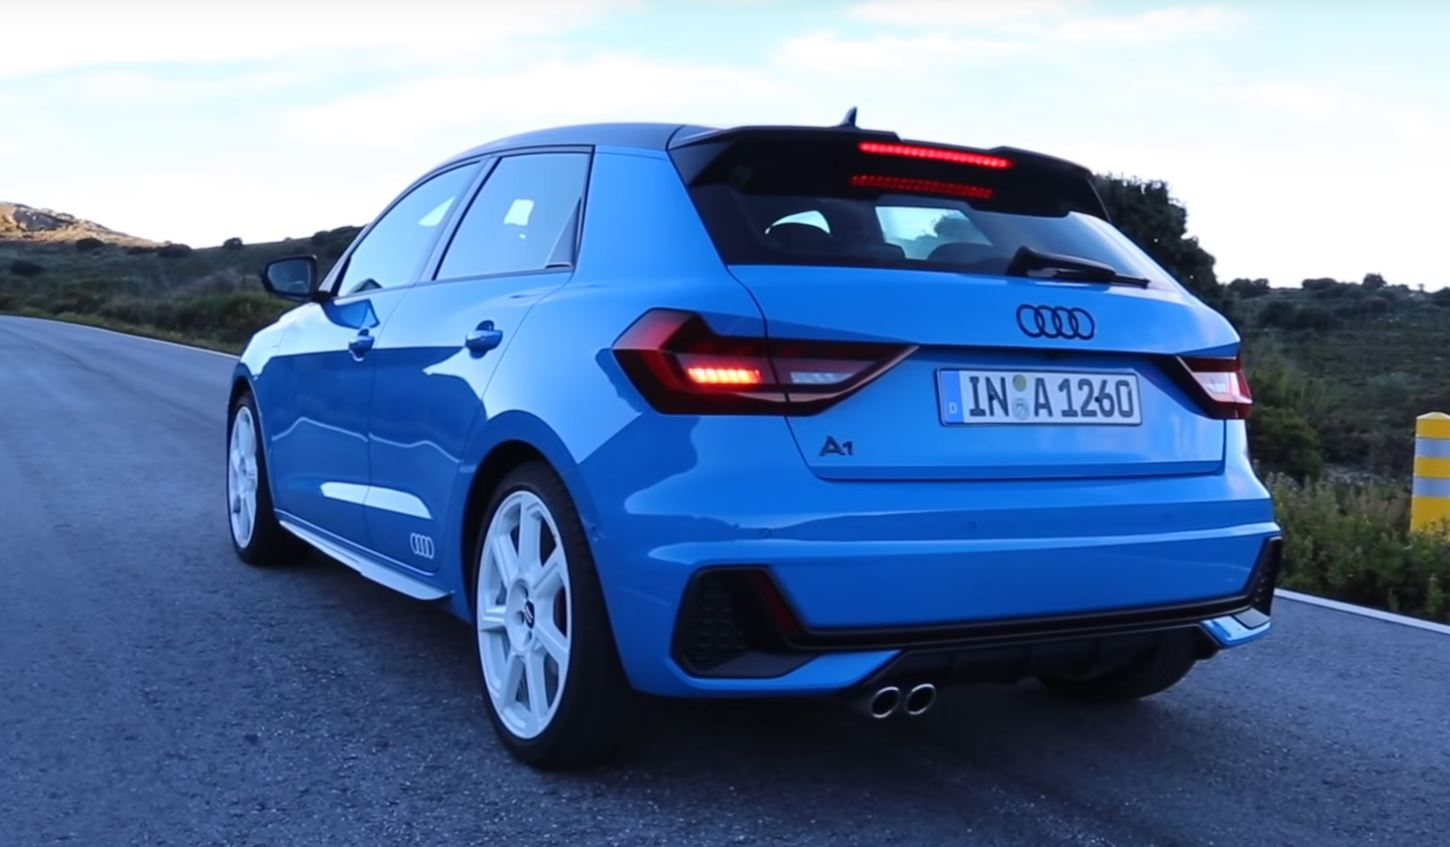 New Audi A1 >> 2019 Audi A1 40 TFSI Is a Polo GTI in Disguise, Hits 100 ...